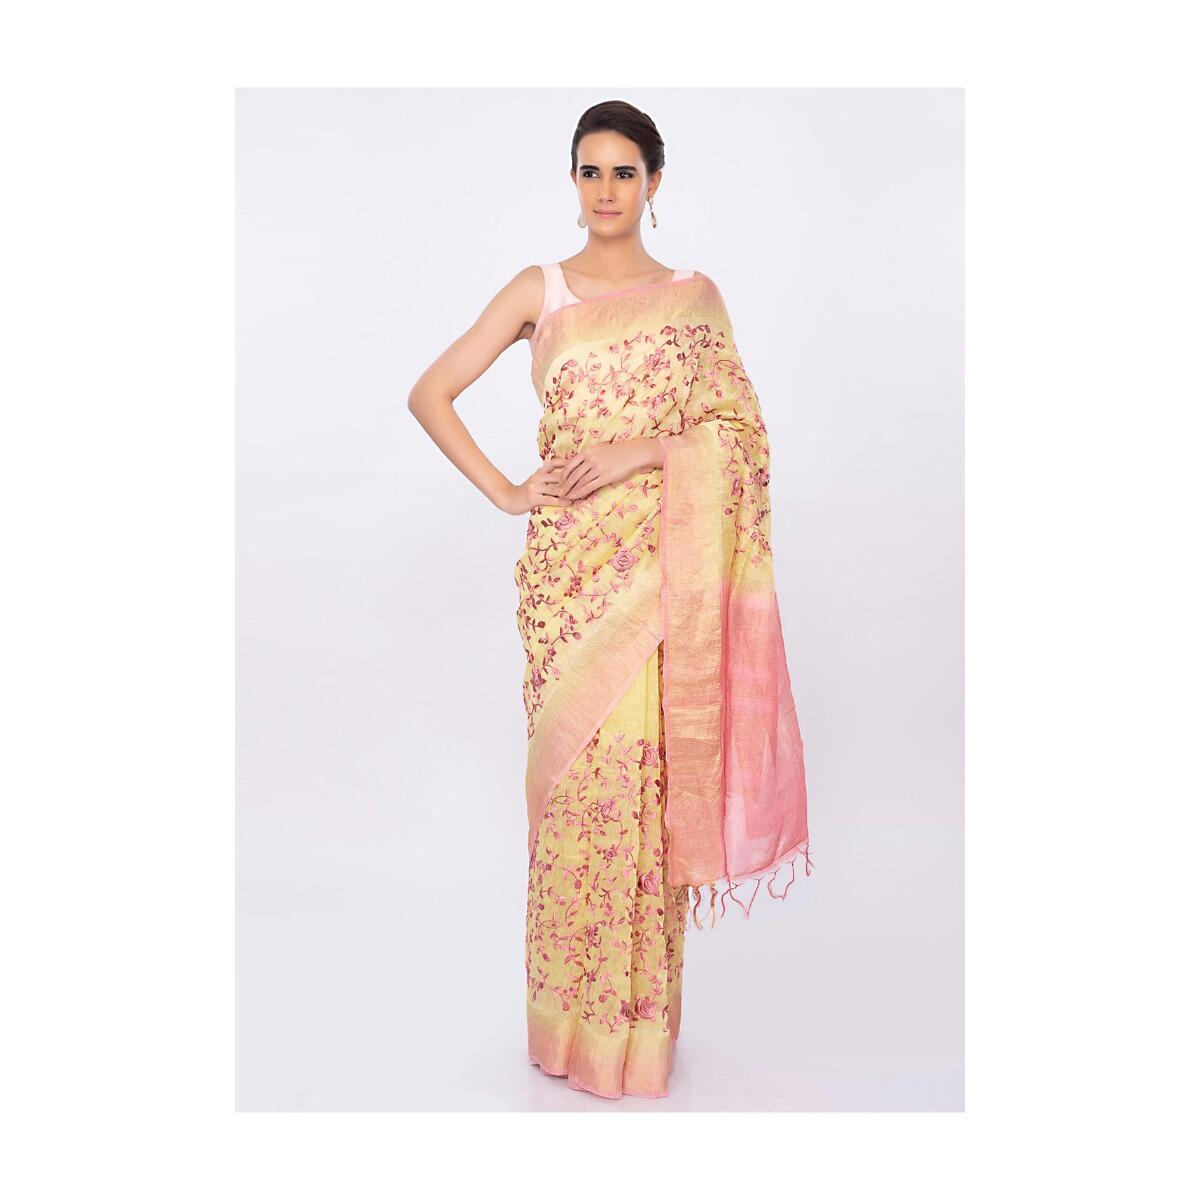 Other Women's Clothing Precise New Peach Linen 3 Piece Semi Stitched Embroidered Suit Embroidery Uk Sellers.